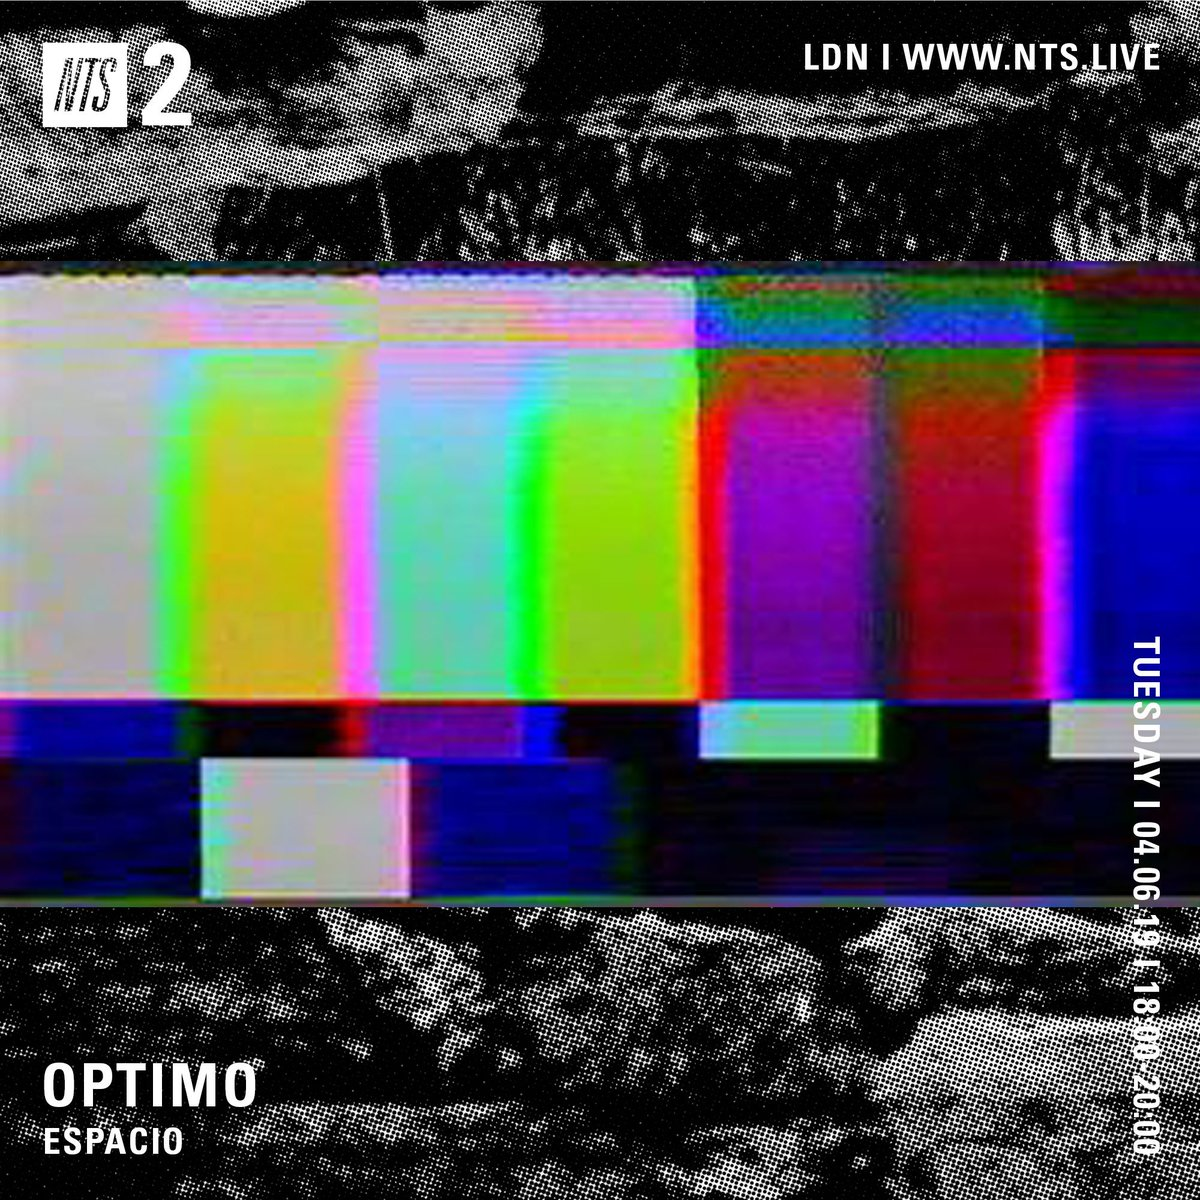 In the safe hands of @OptimoMusic for the next two hours, with music from Free Love, Peter Zummo & lots more: nts.live/2